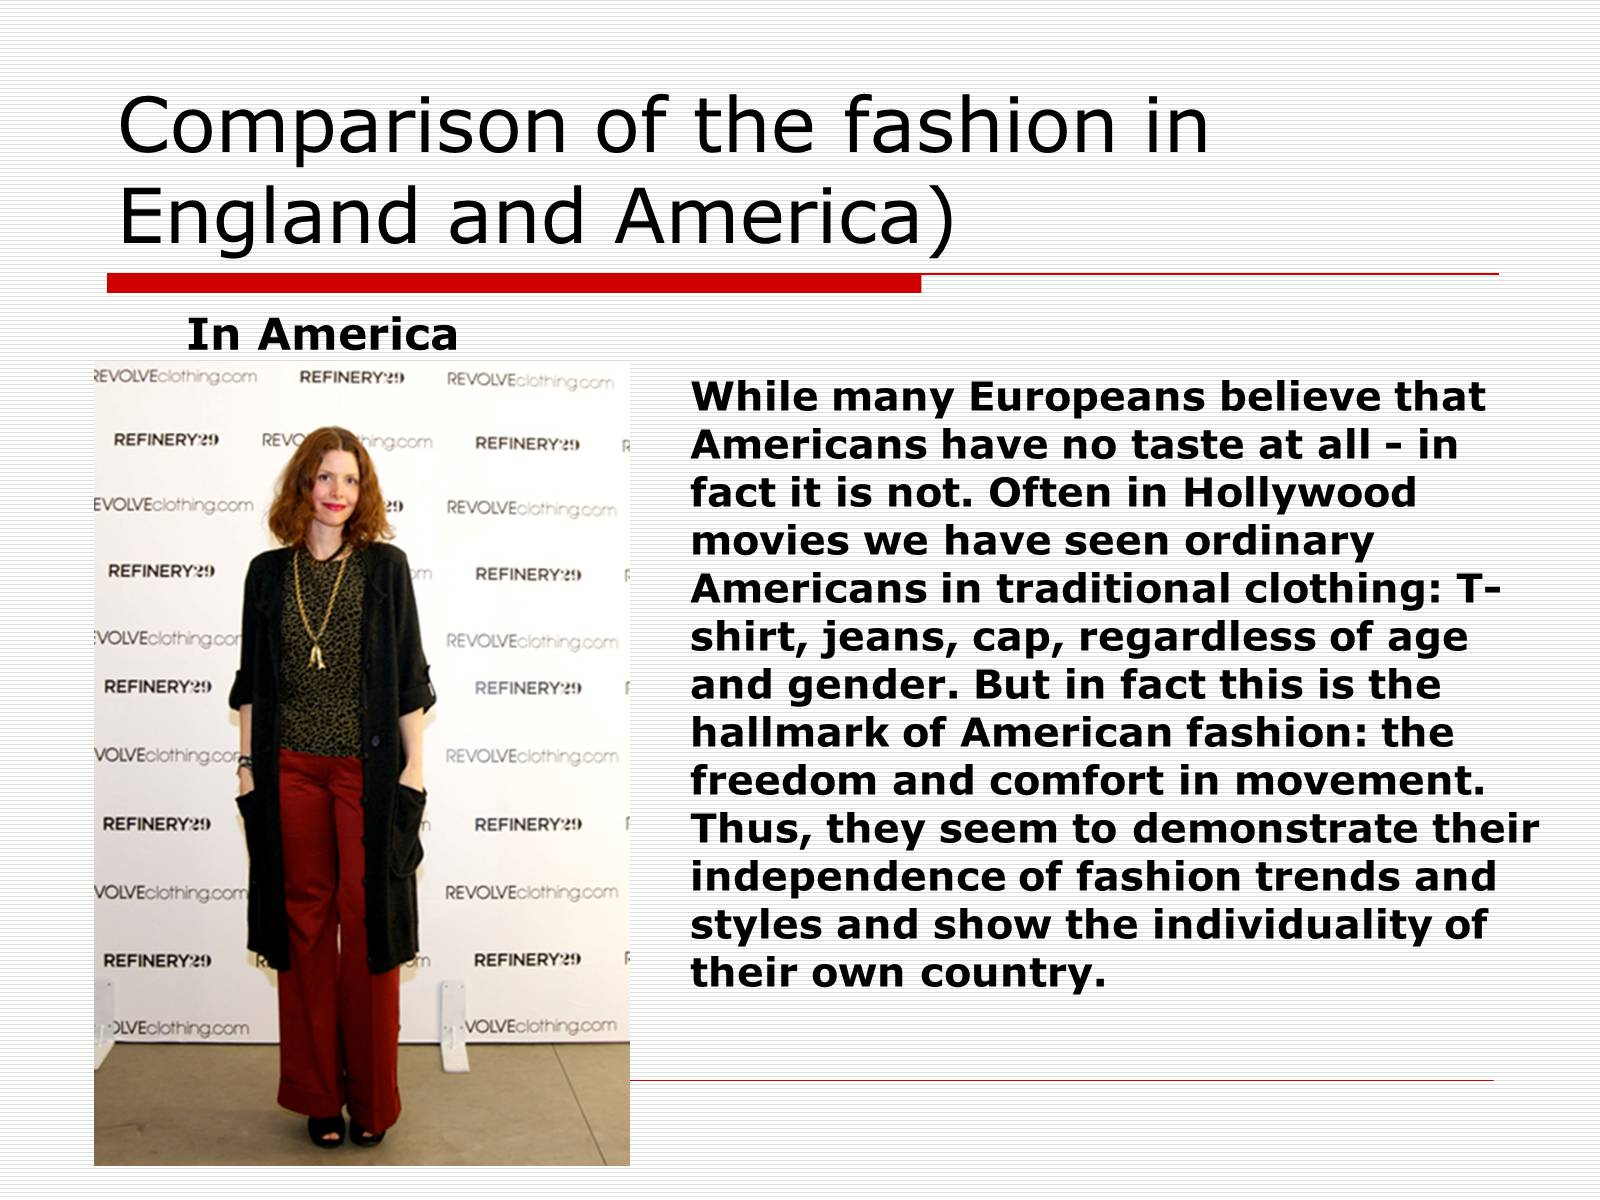 Презентація на тему «Comparison of the fashion in England and America» - Слайд #15